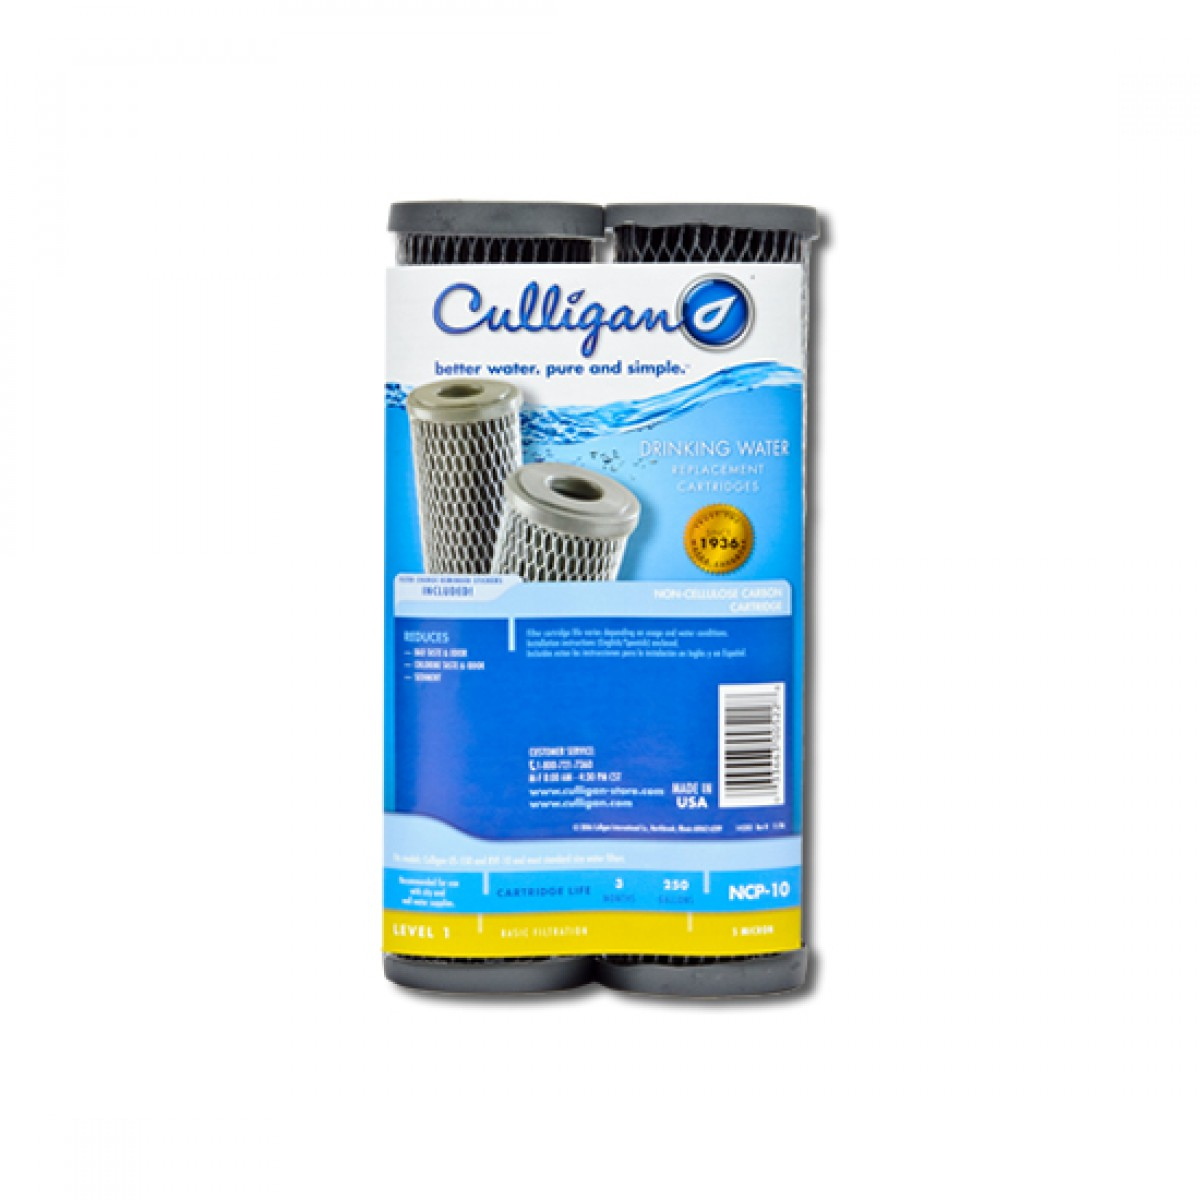 Ncp 10 Culligan Whole House Filter Replacement Cartridge